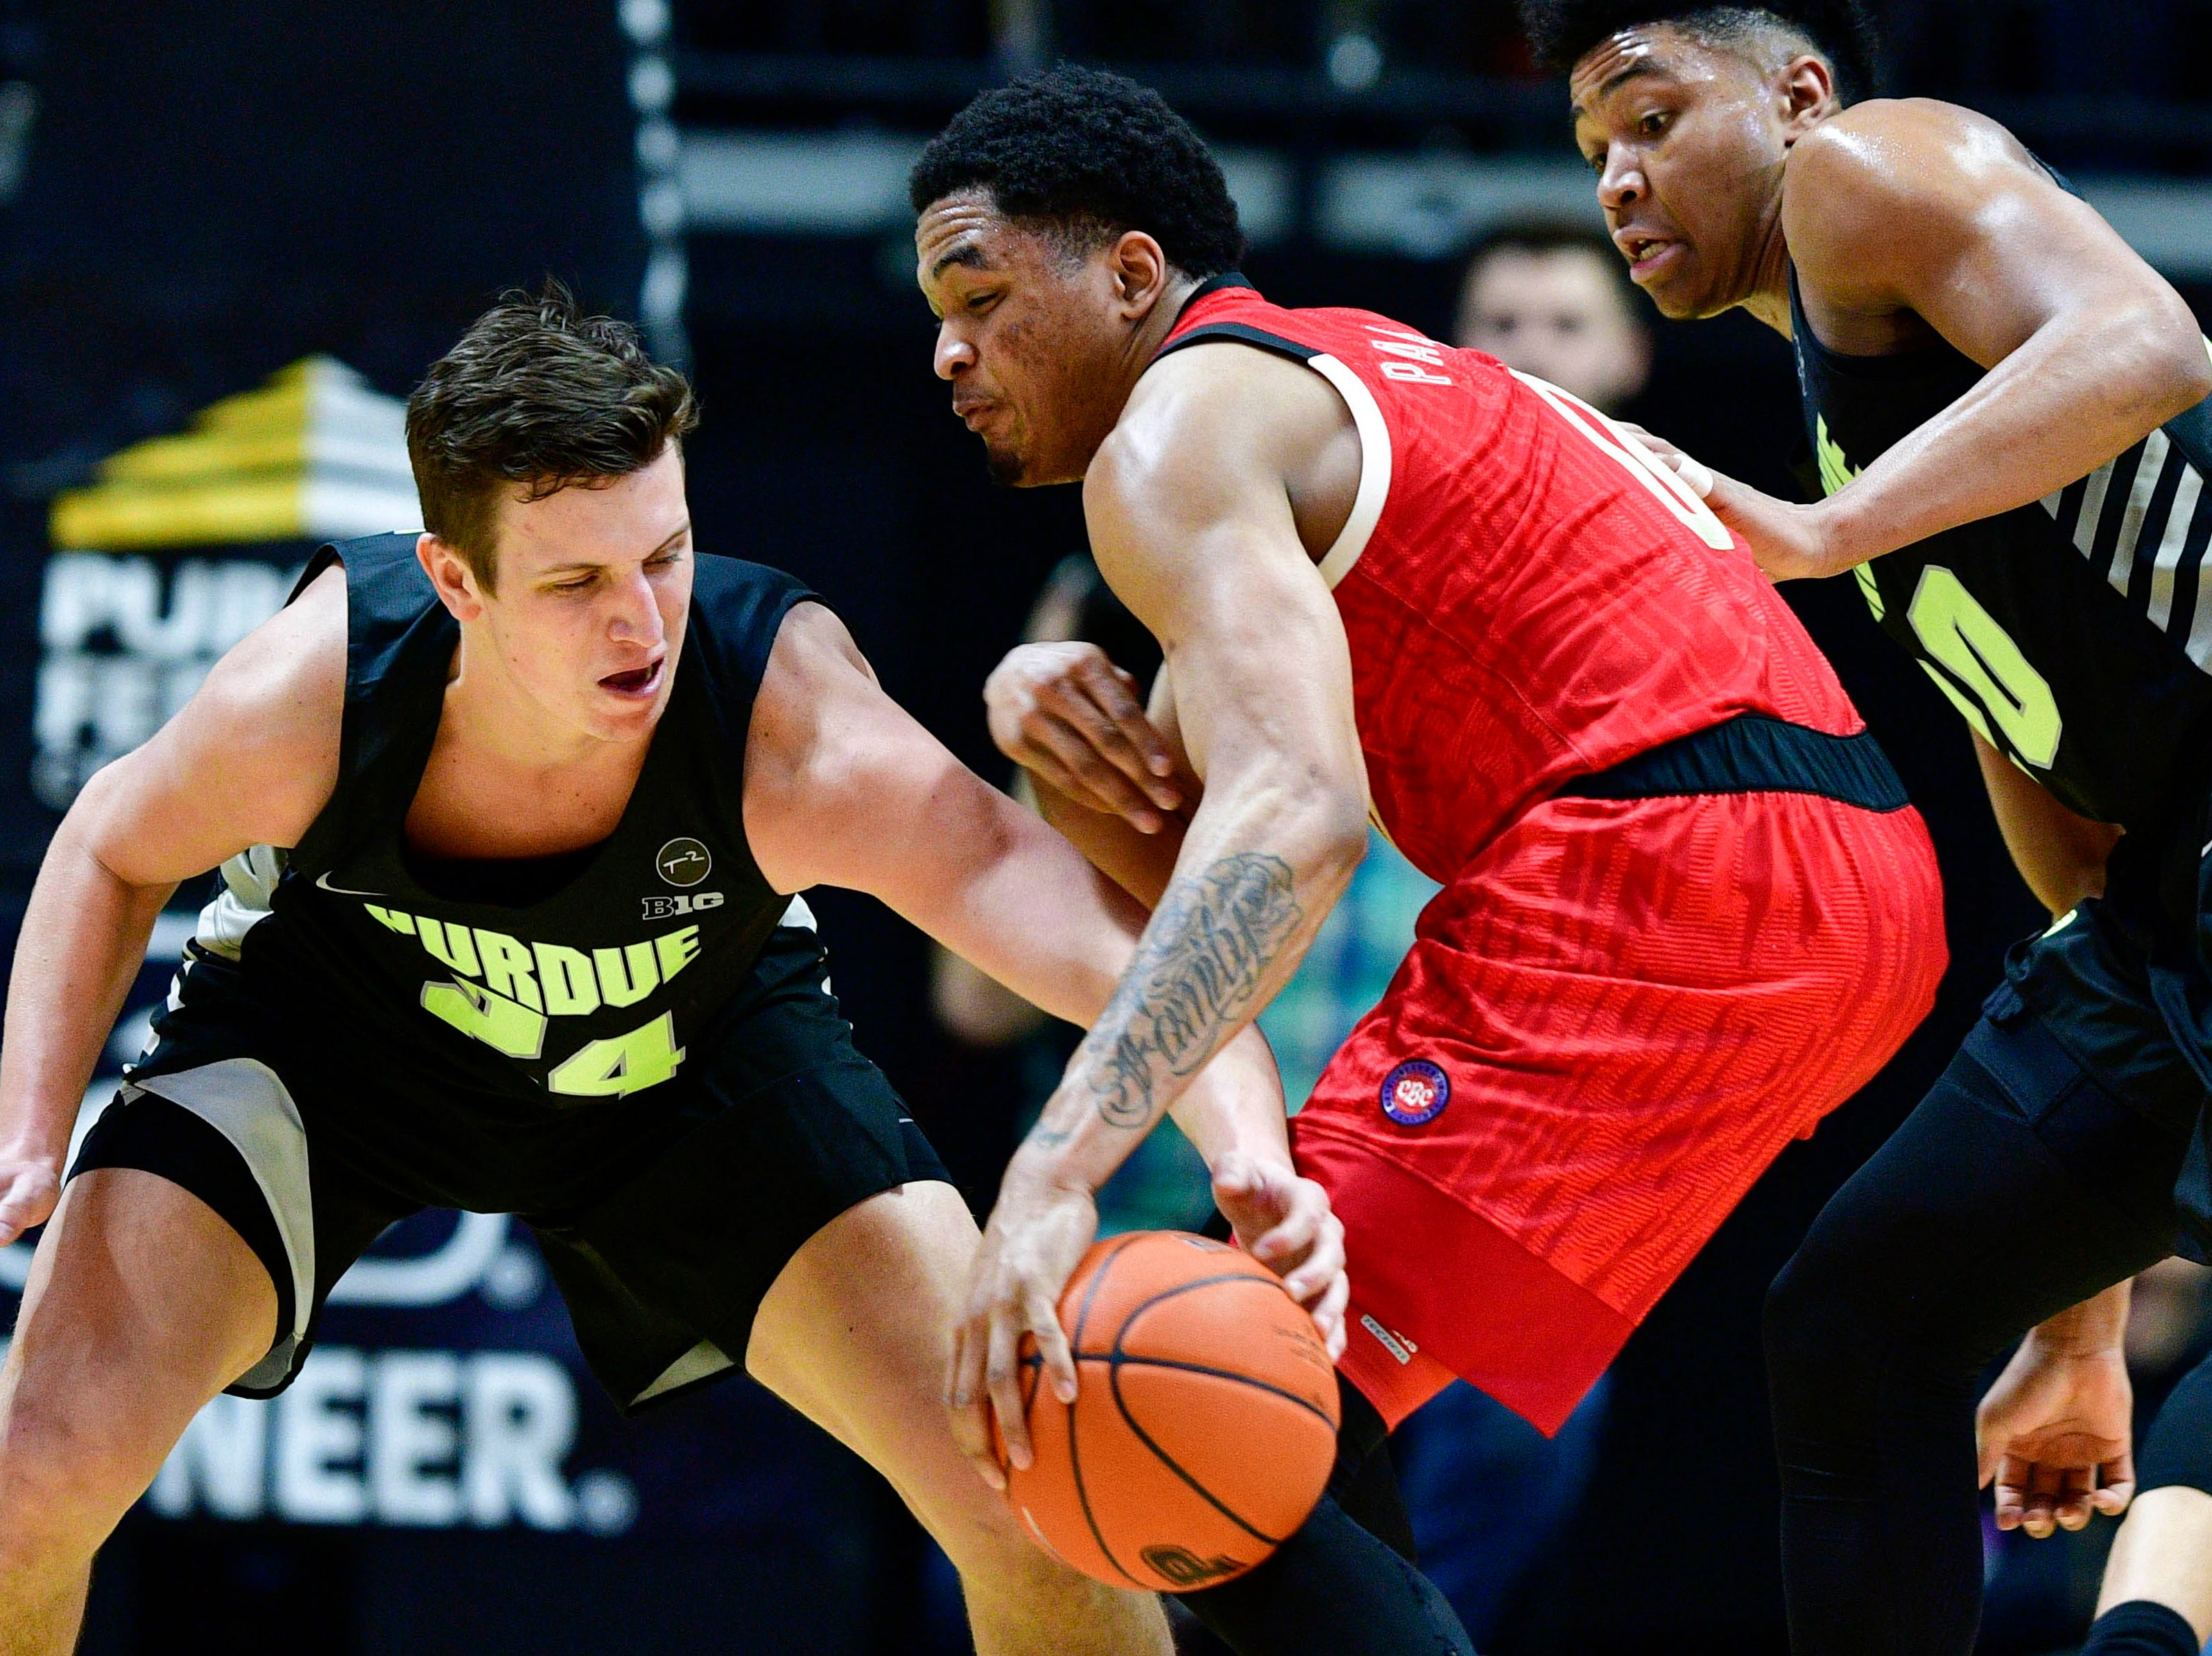 Feb 9, 2019; West Lafayette, IN, USA; Purdue Boilermakers forward Grady Eifert (24) steals a ball from Nebraska Cornhuskers guard James Palmer Jr. (0) during the second half of the game at Mackey Arena. The Purdue Boilermakers defeated the Nebraska Cornhuskers 81 to 62.  Mandatory Credit: Marc Lebryk-USA TODAY Sports